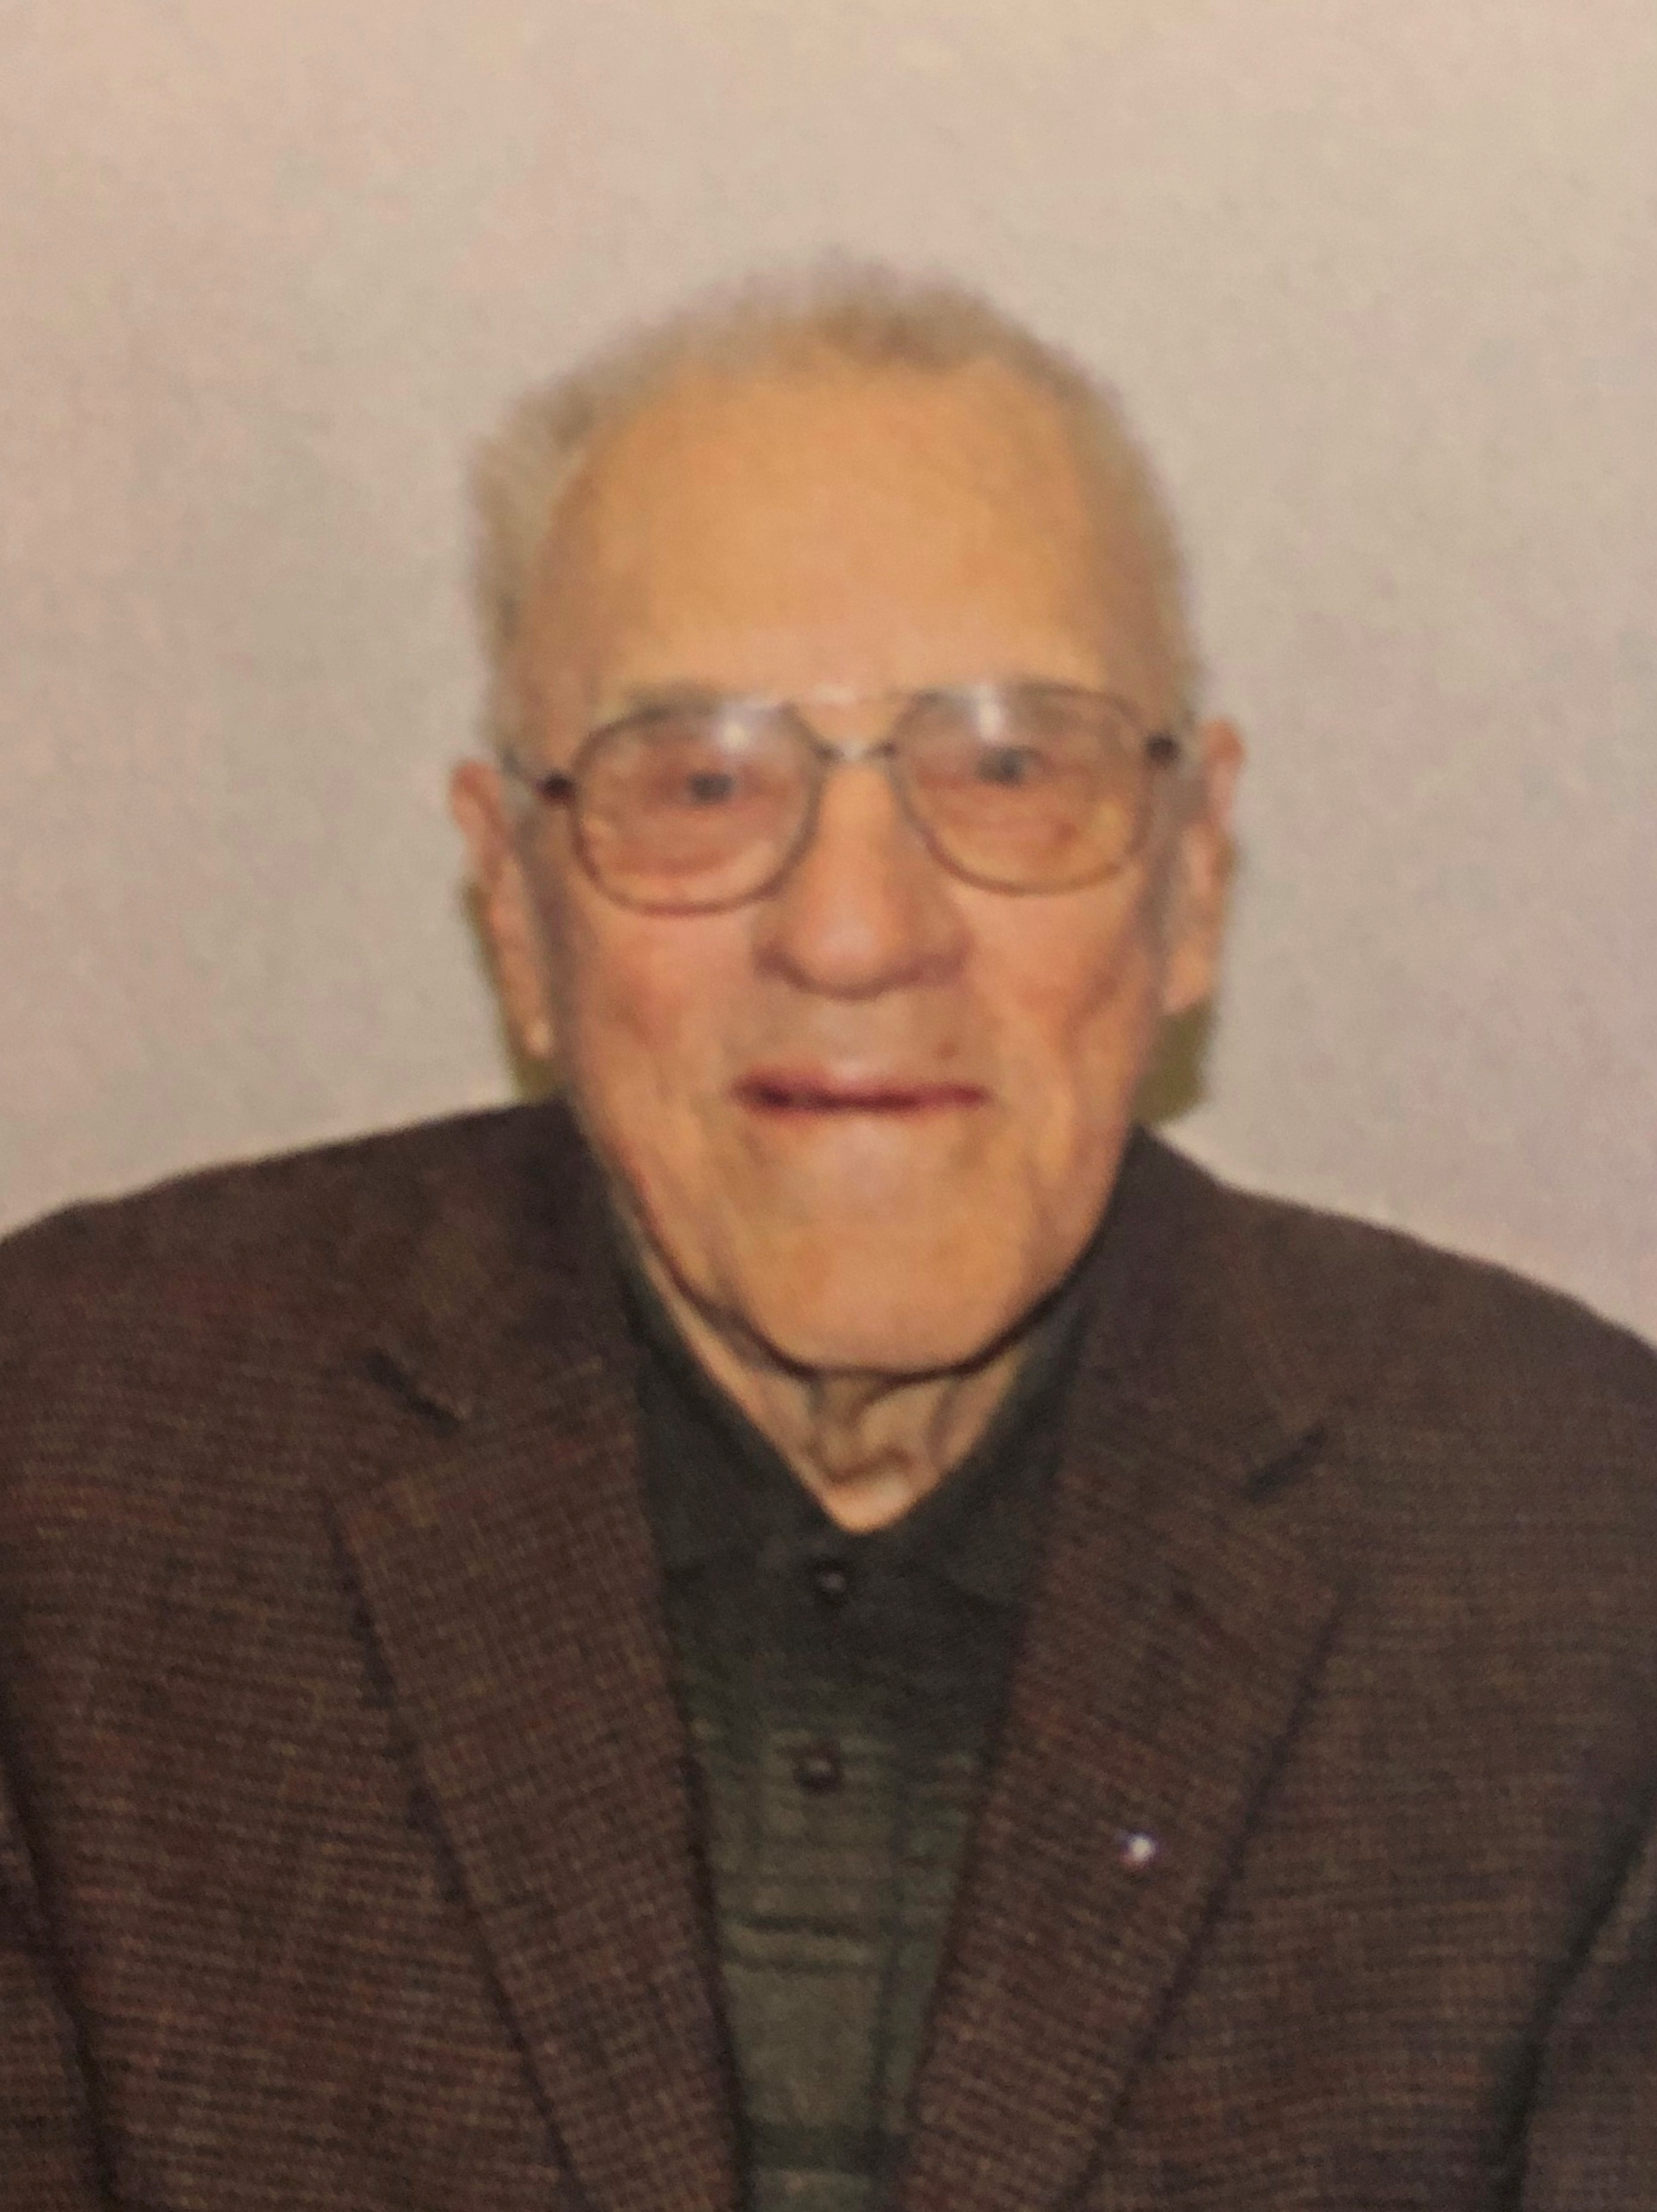 Harold Peterson, 91, of Gothenburg, Nebraska